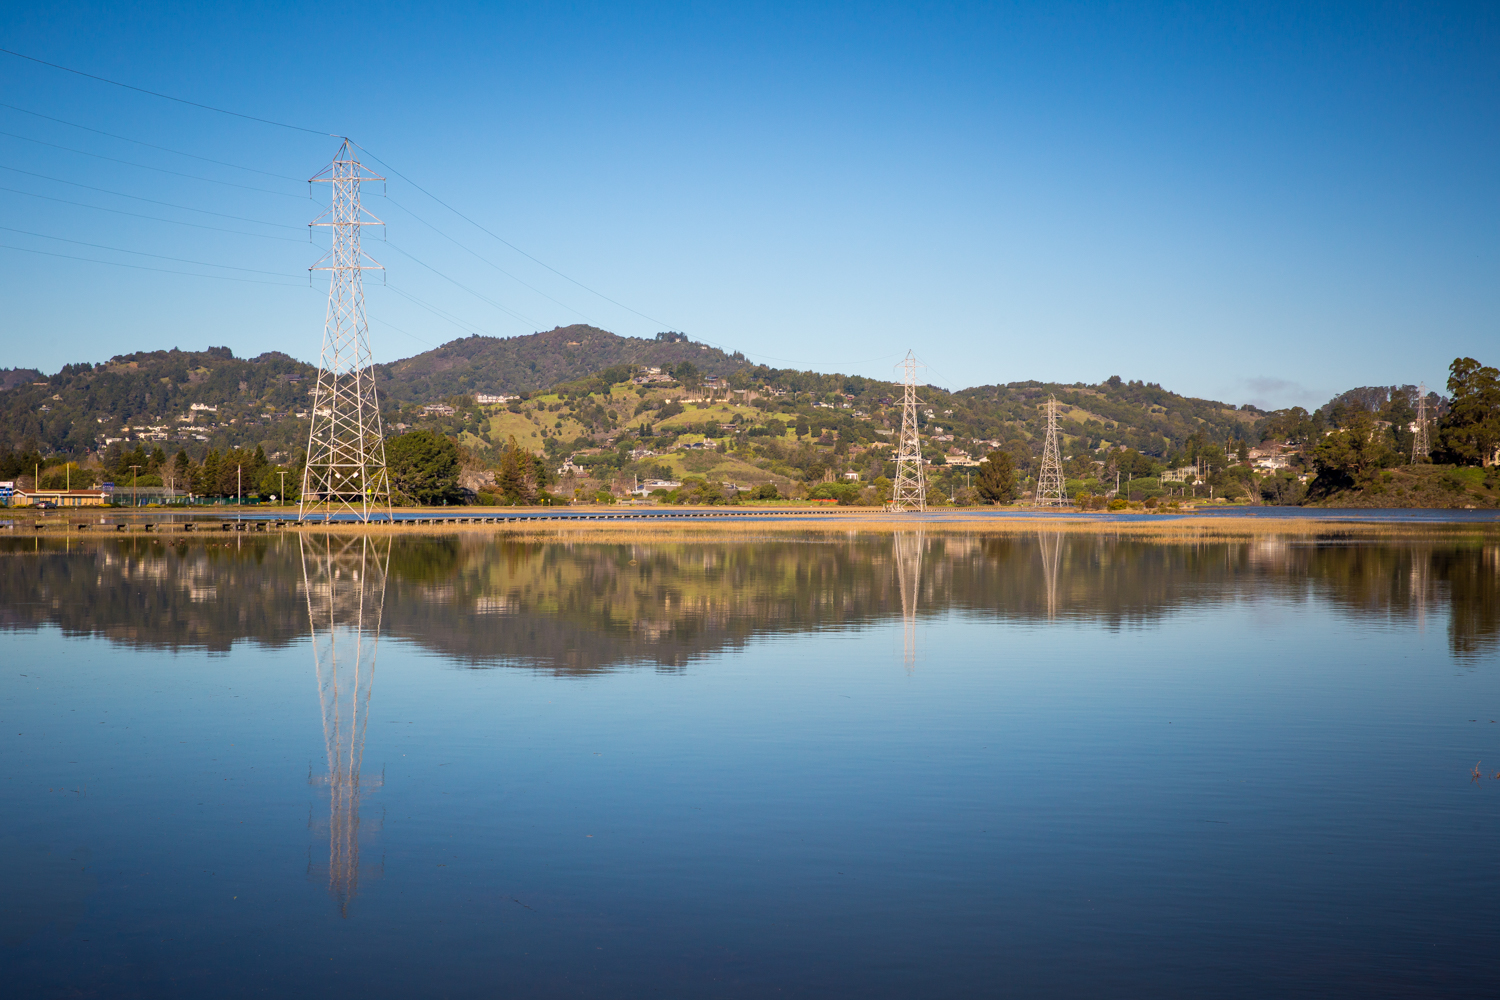 Flooded low area by Richardson Bay